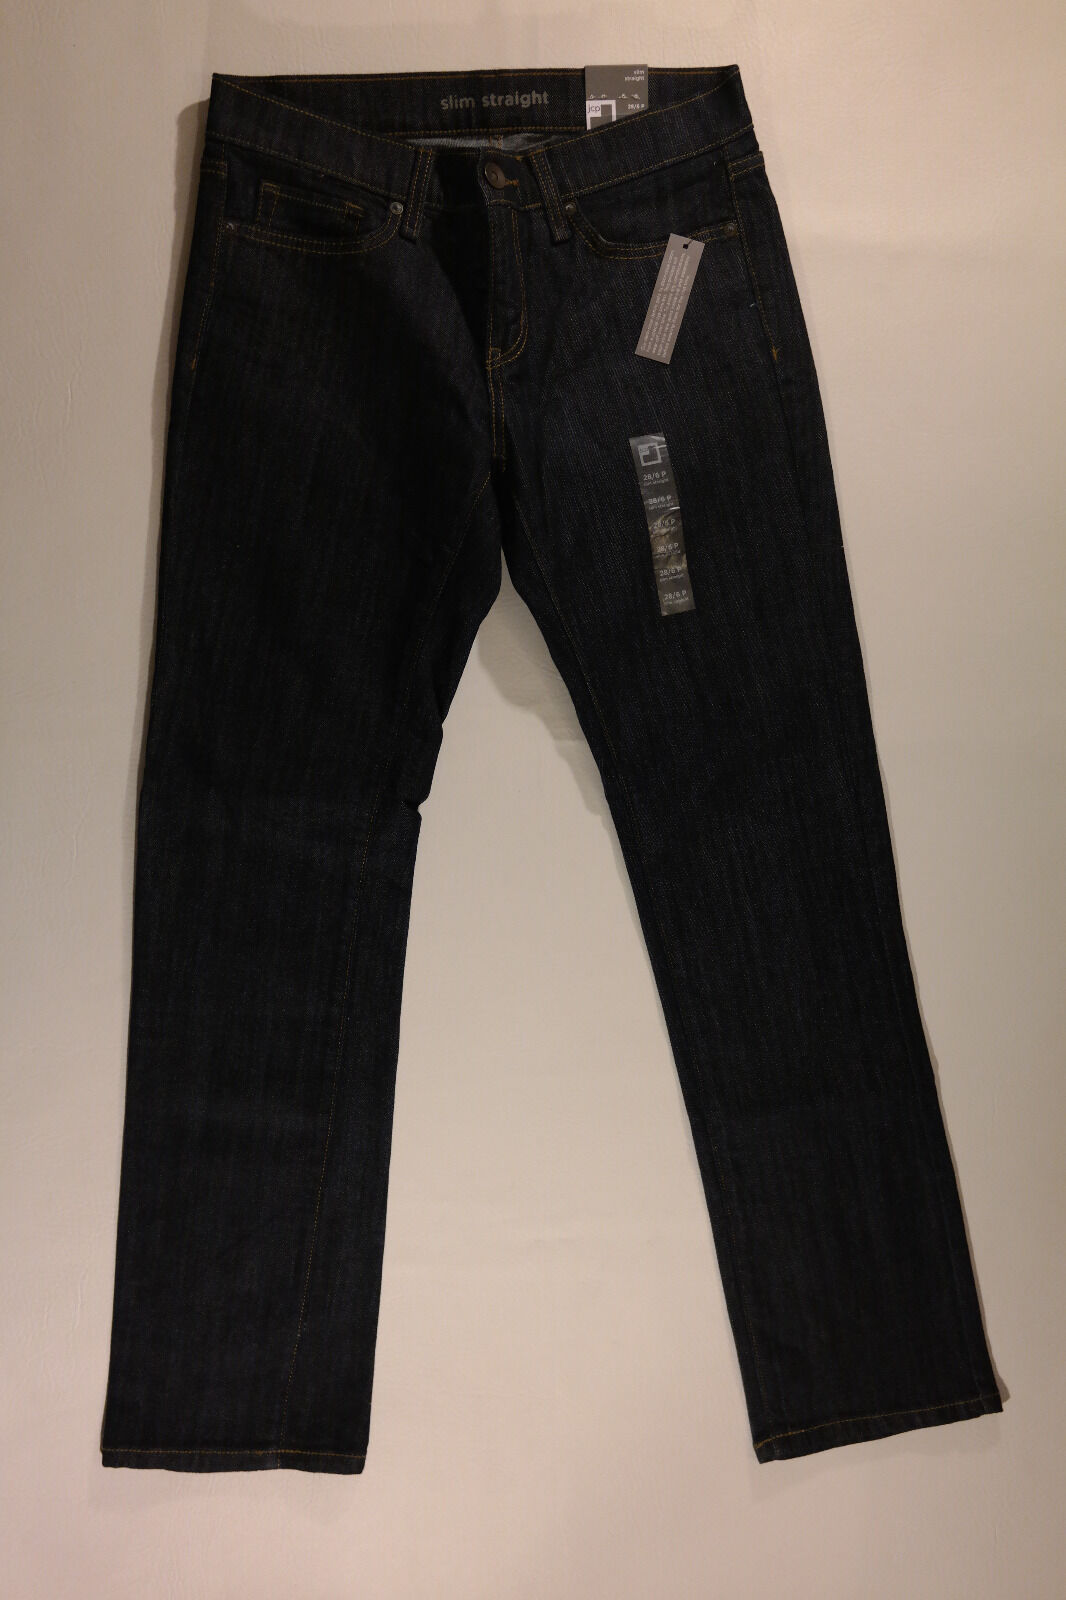 WOMEN'S 28 6P, STRAIGHT JEANS BY SLIM STRAIGHT, BRAND NEW